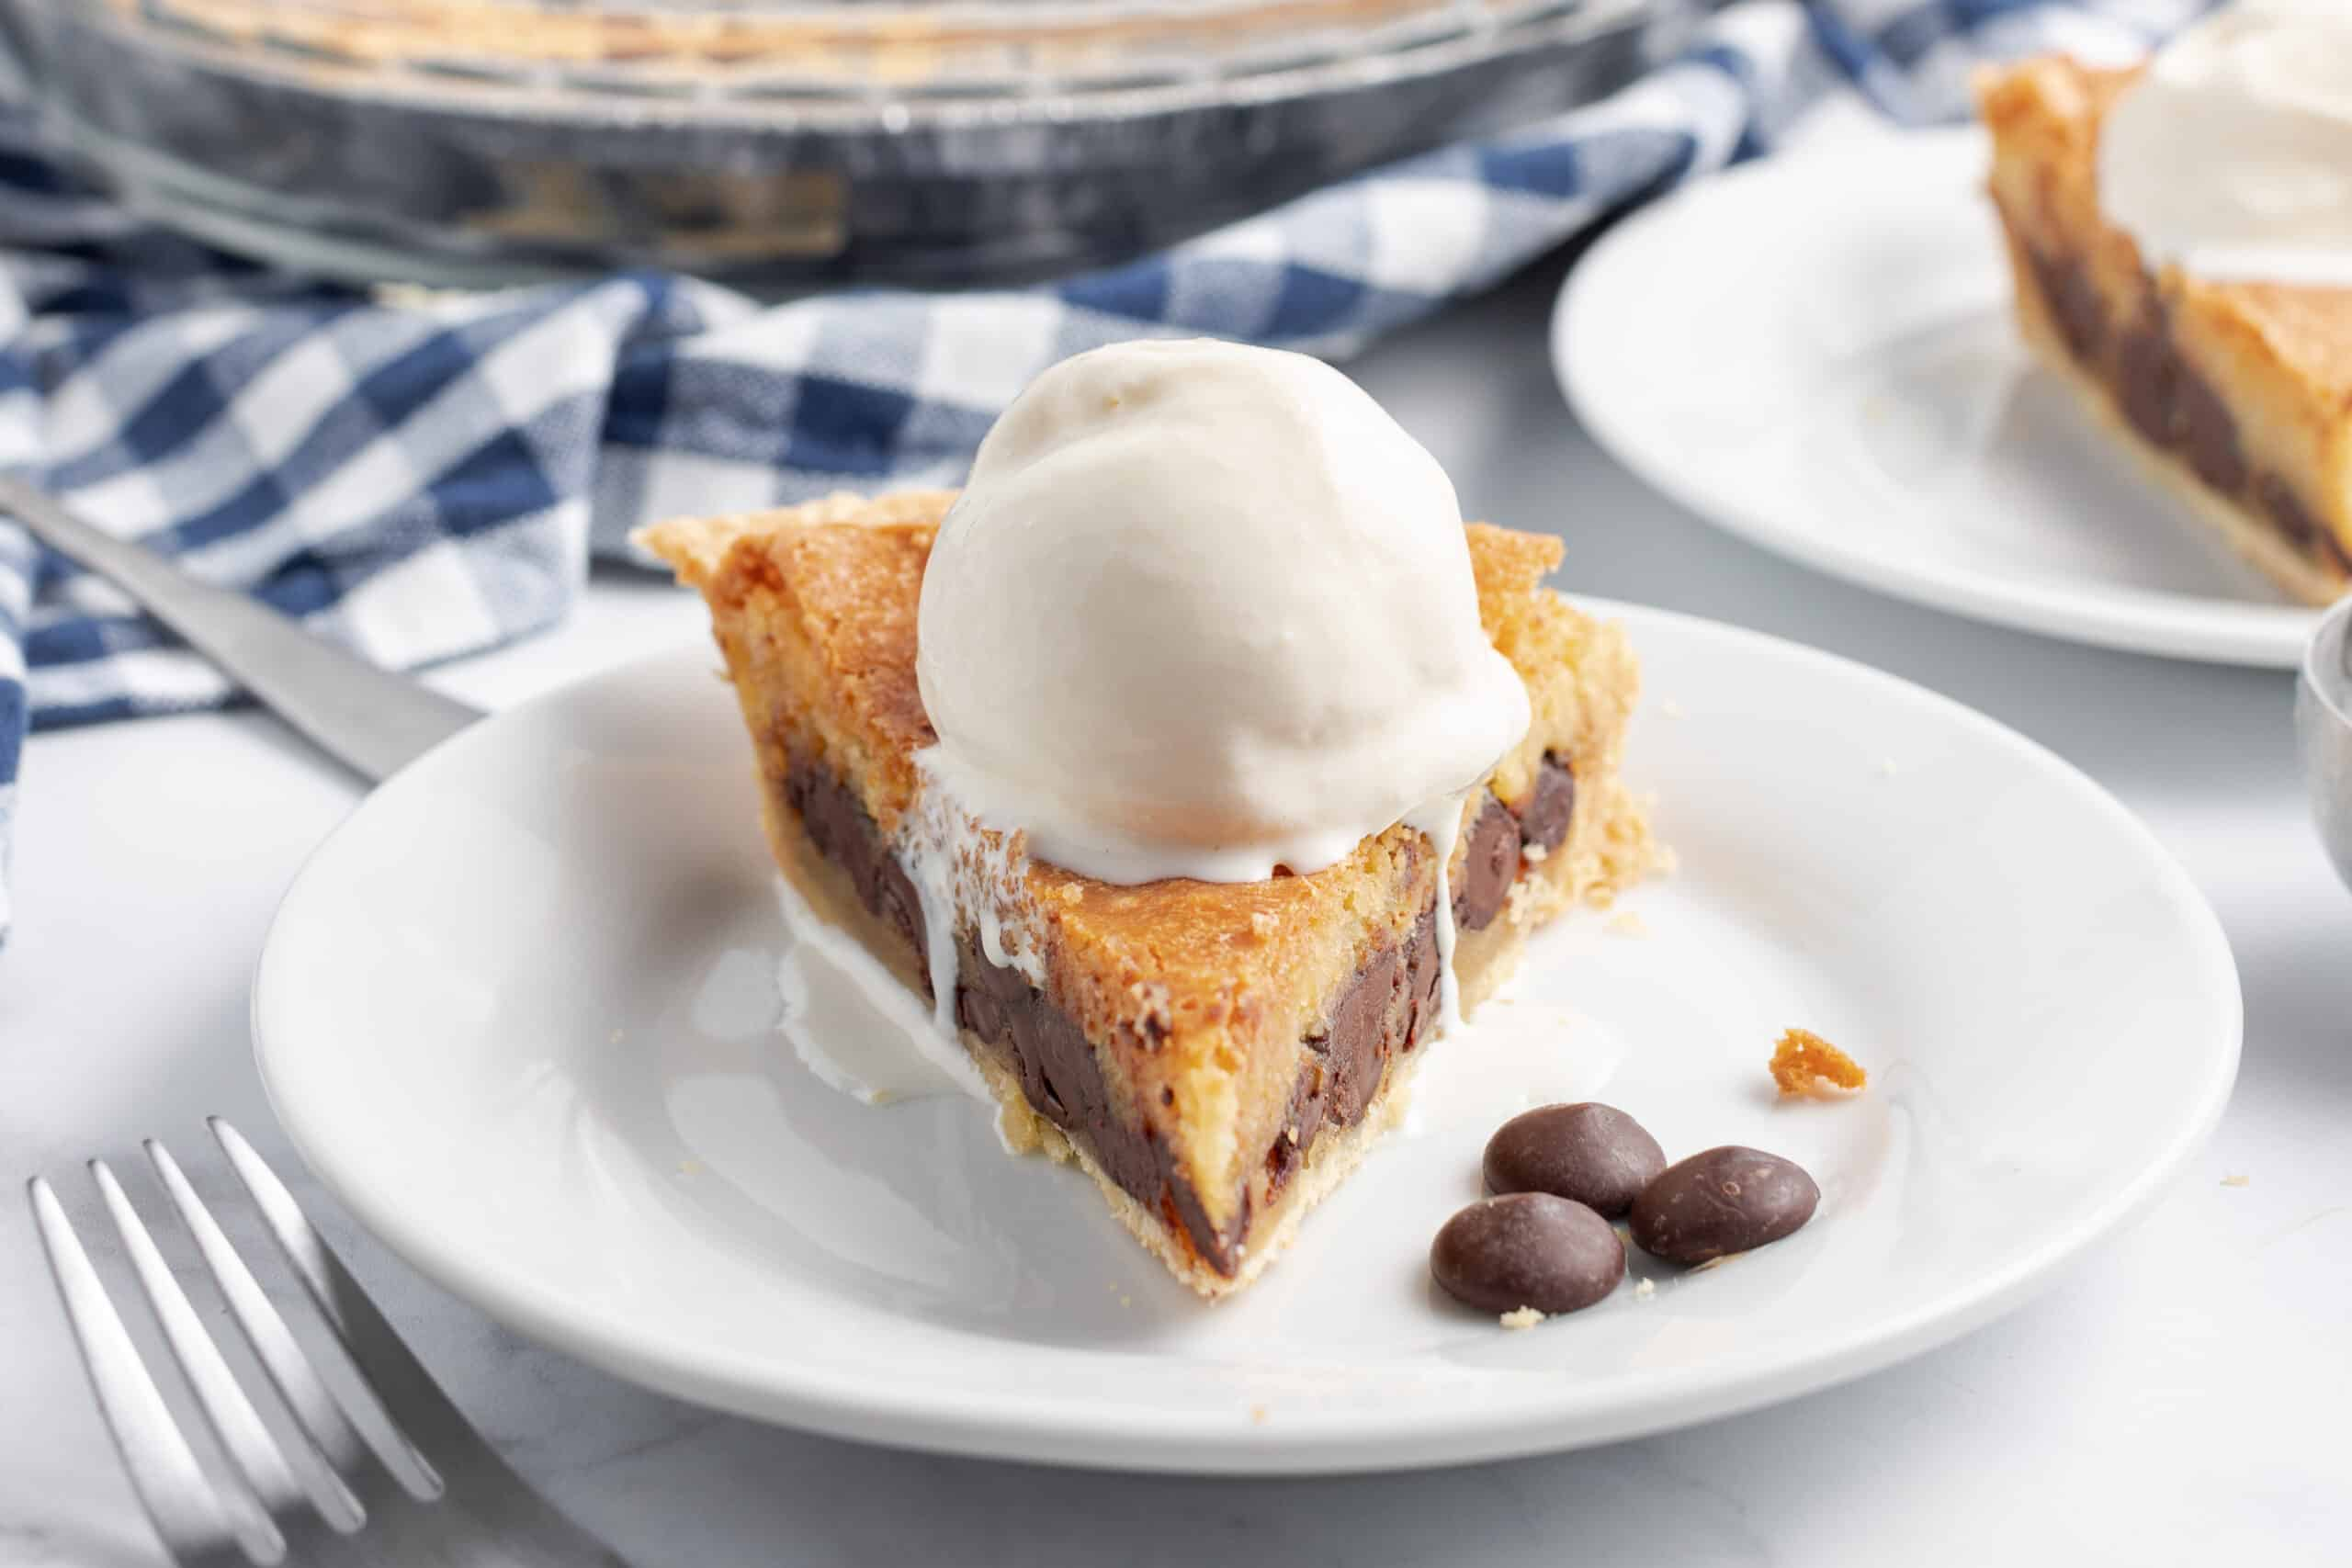 Pie with chocolate chip cookie dough baked in the filling topped with vanilla ice cream.